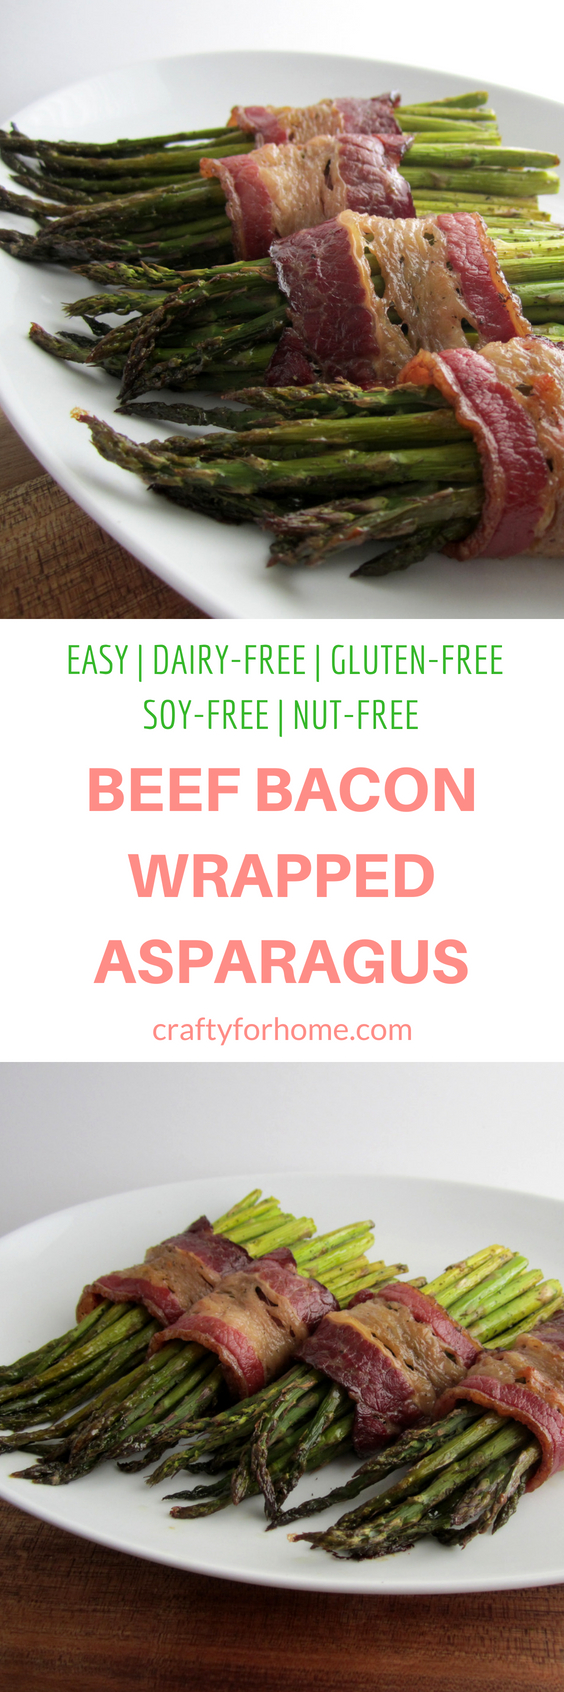 Quick and easy beef bacon wrapped asparagus, cook it in the sheet pan for an easy cleaning #dairyfree #easyrecipes #sheetpan #beefbacon #asparagusrecipes for full recipe on craftyforhome.com